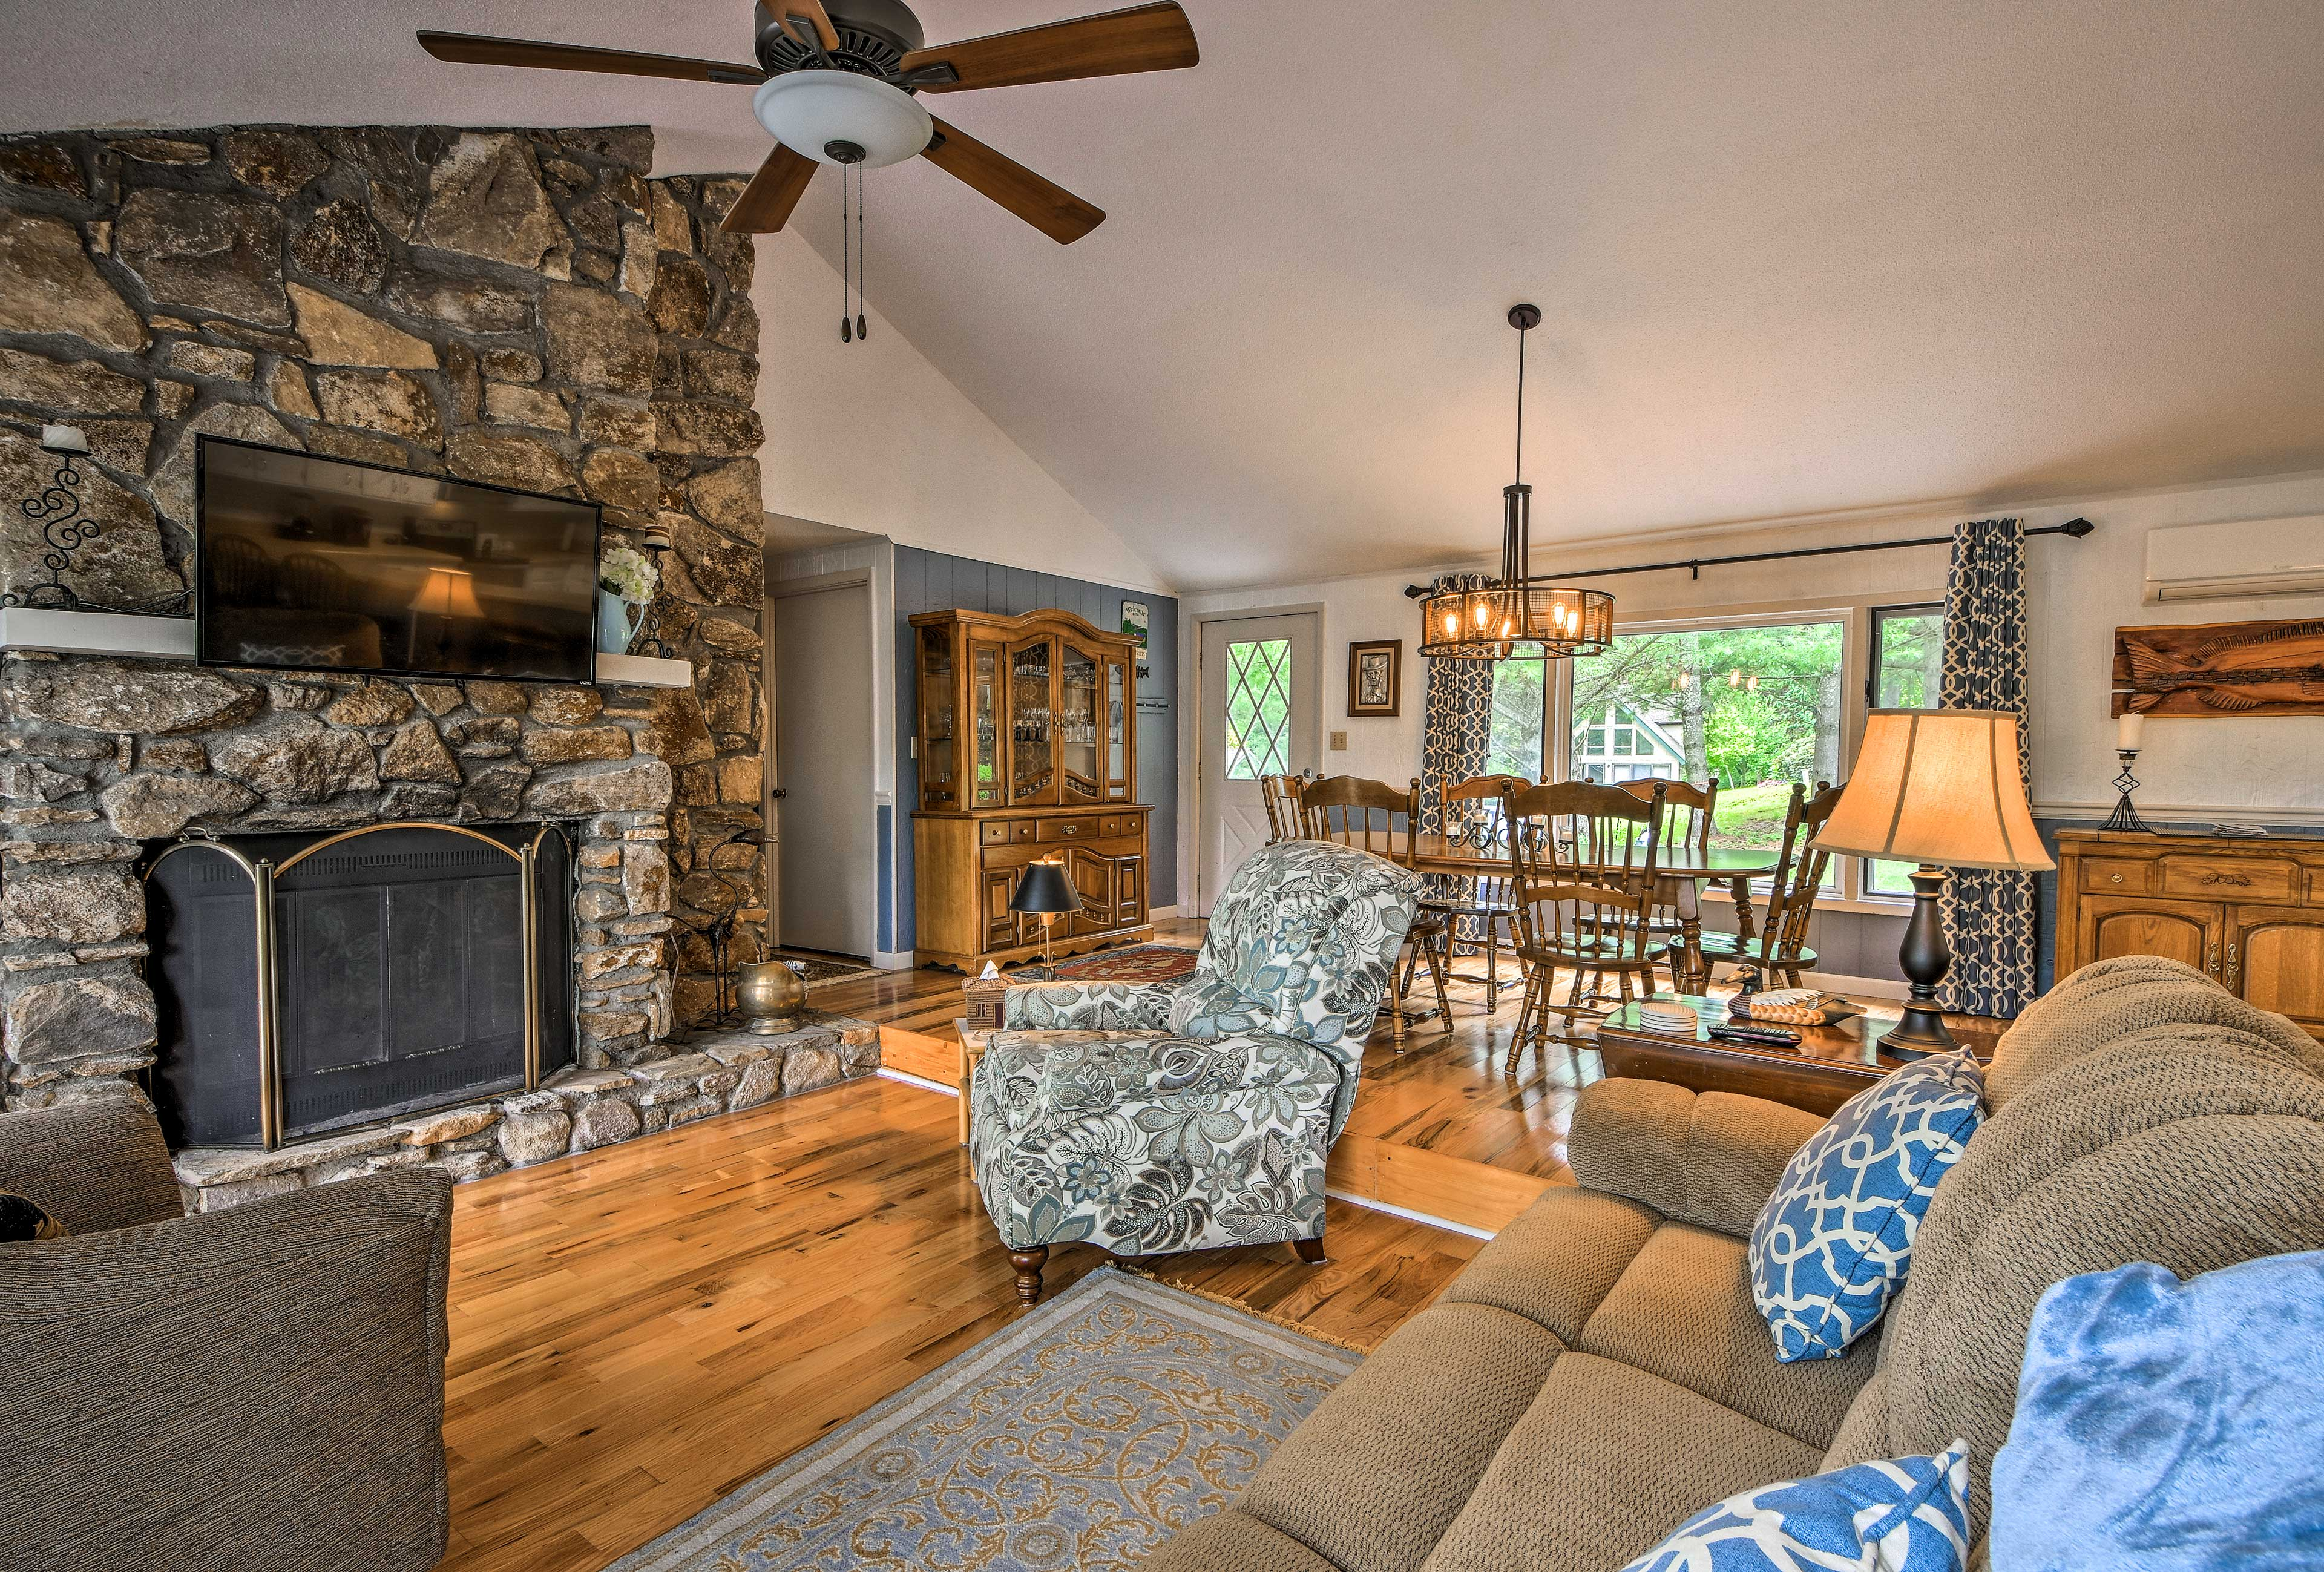 A cozy interior makes this Sky Valley vacation rental house feel like home.